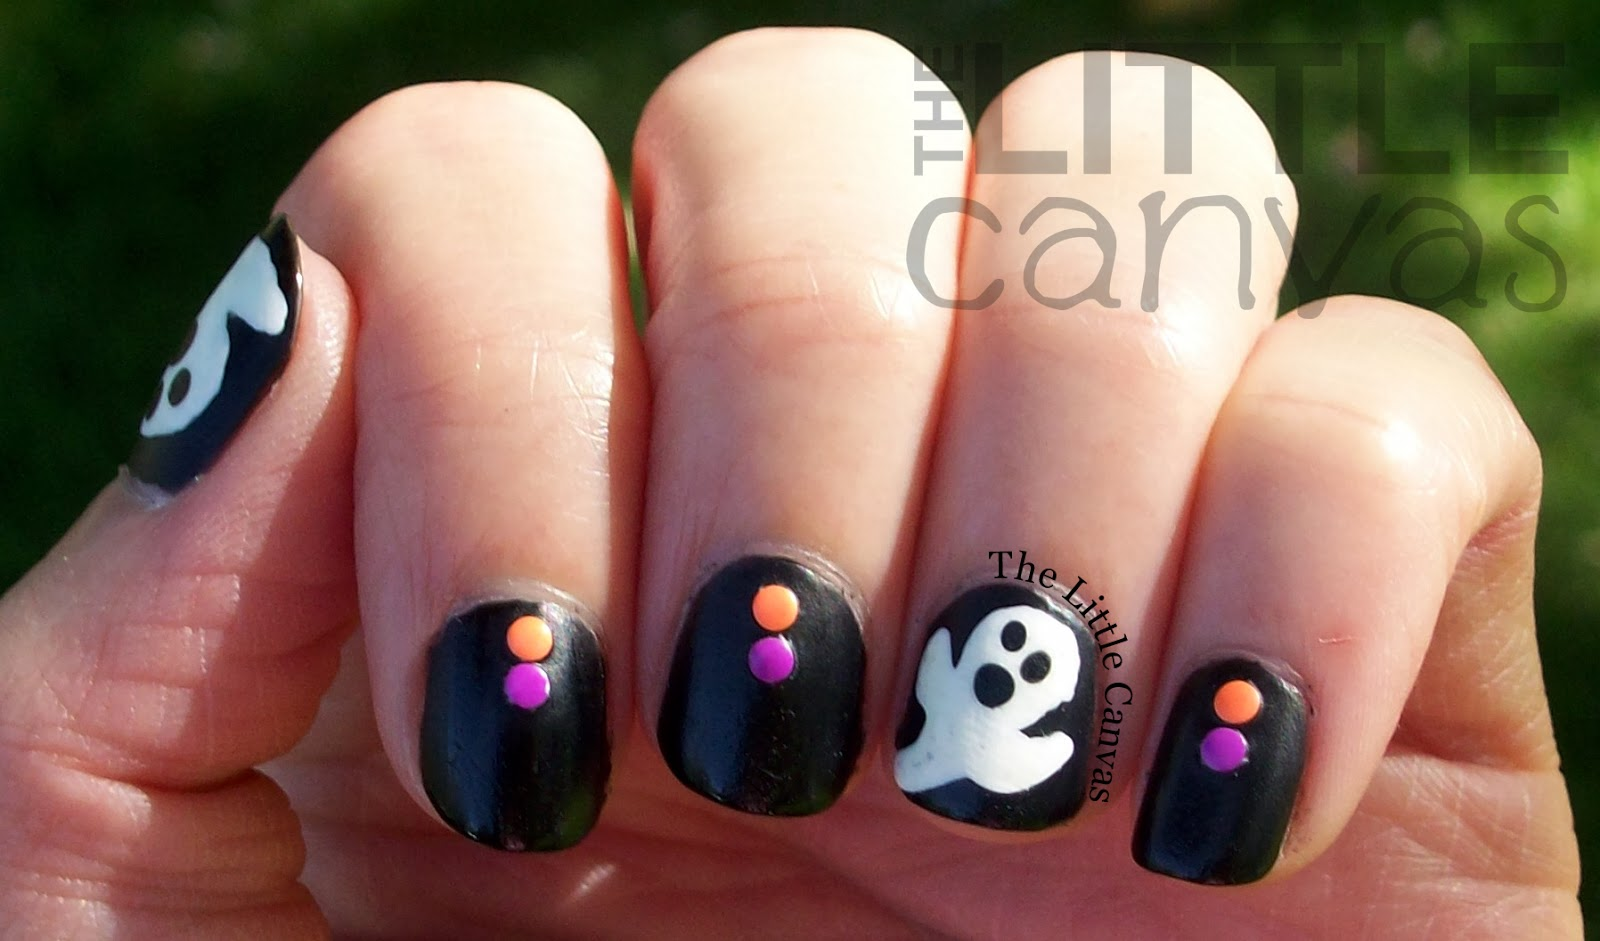 Ghost Nail Art - My First Stud Manicure! - The Little Canvas